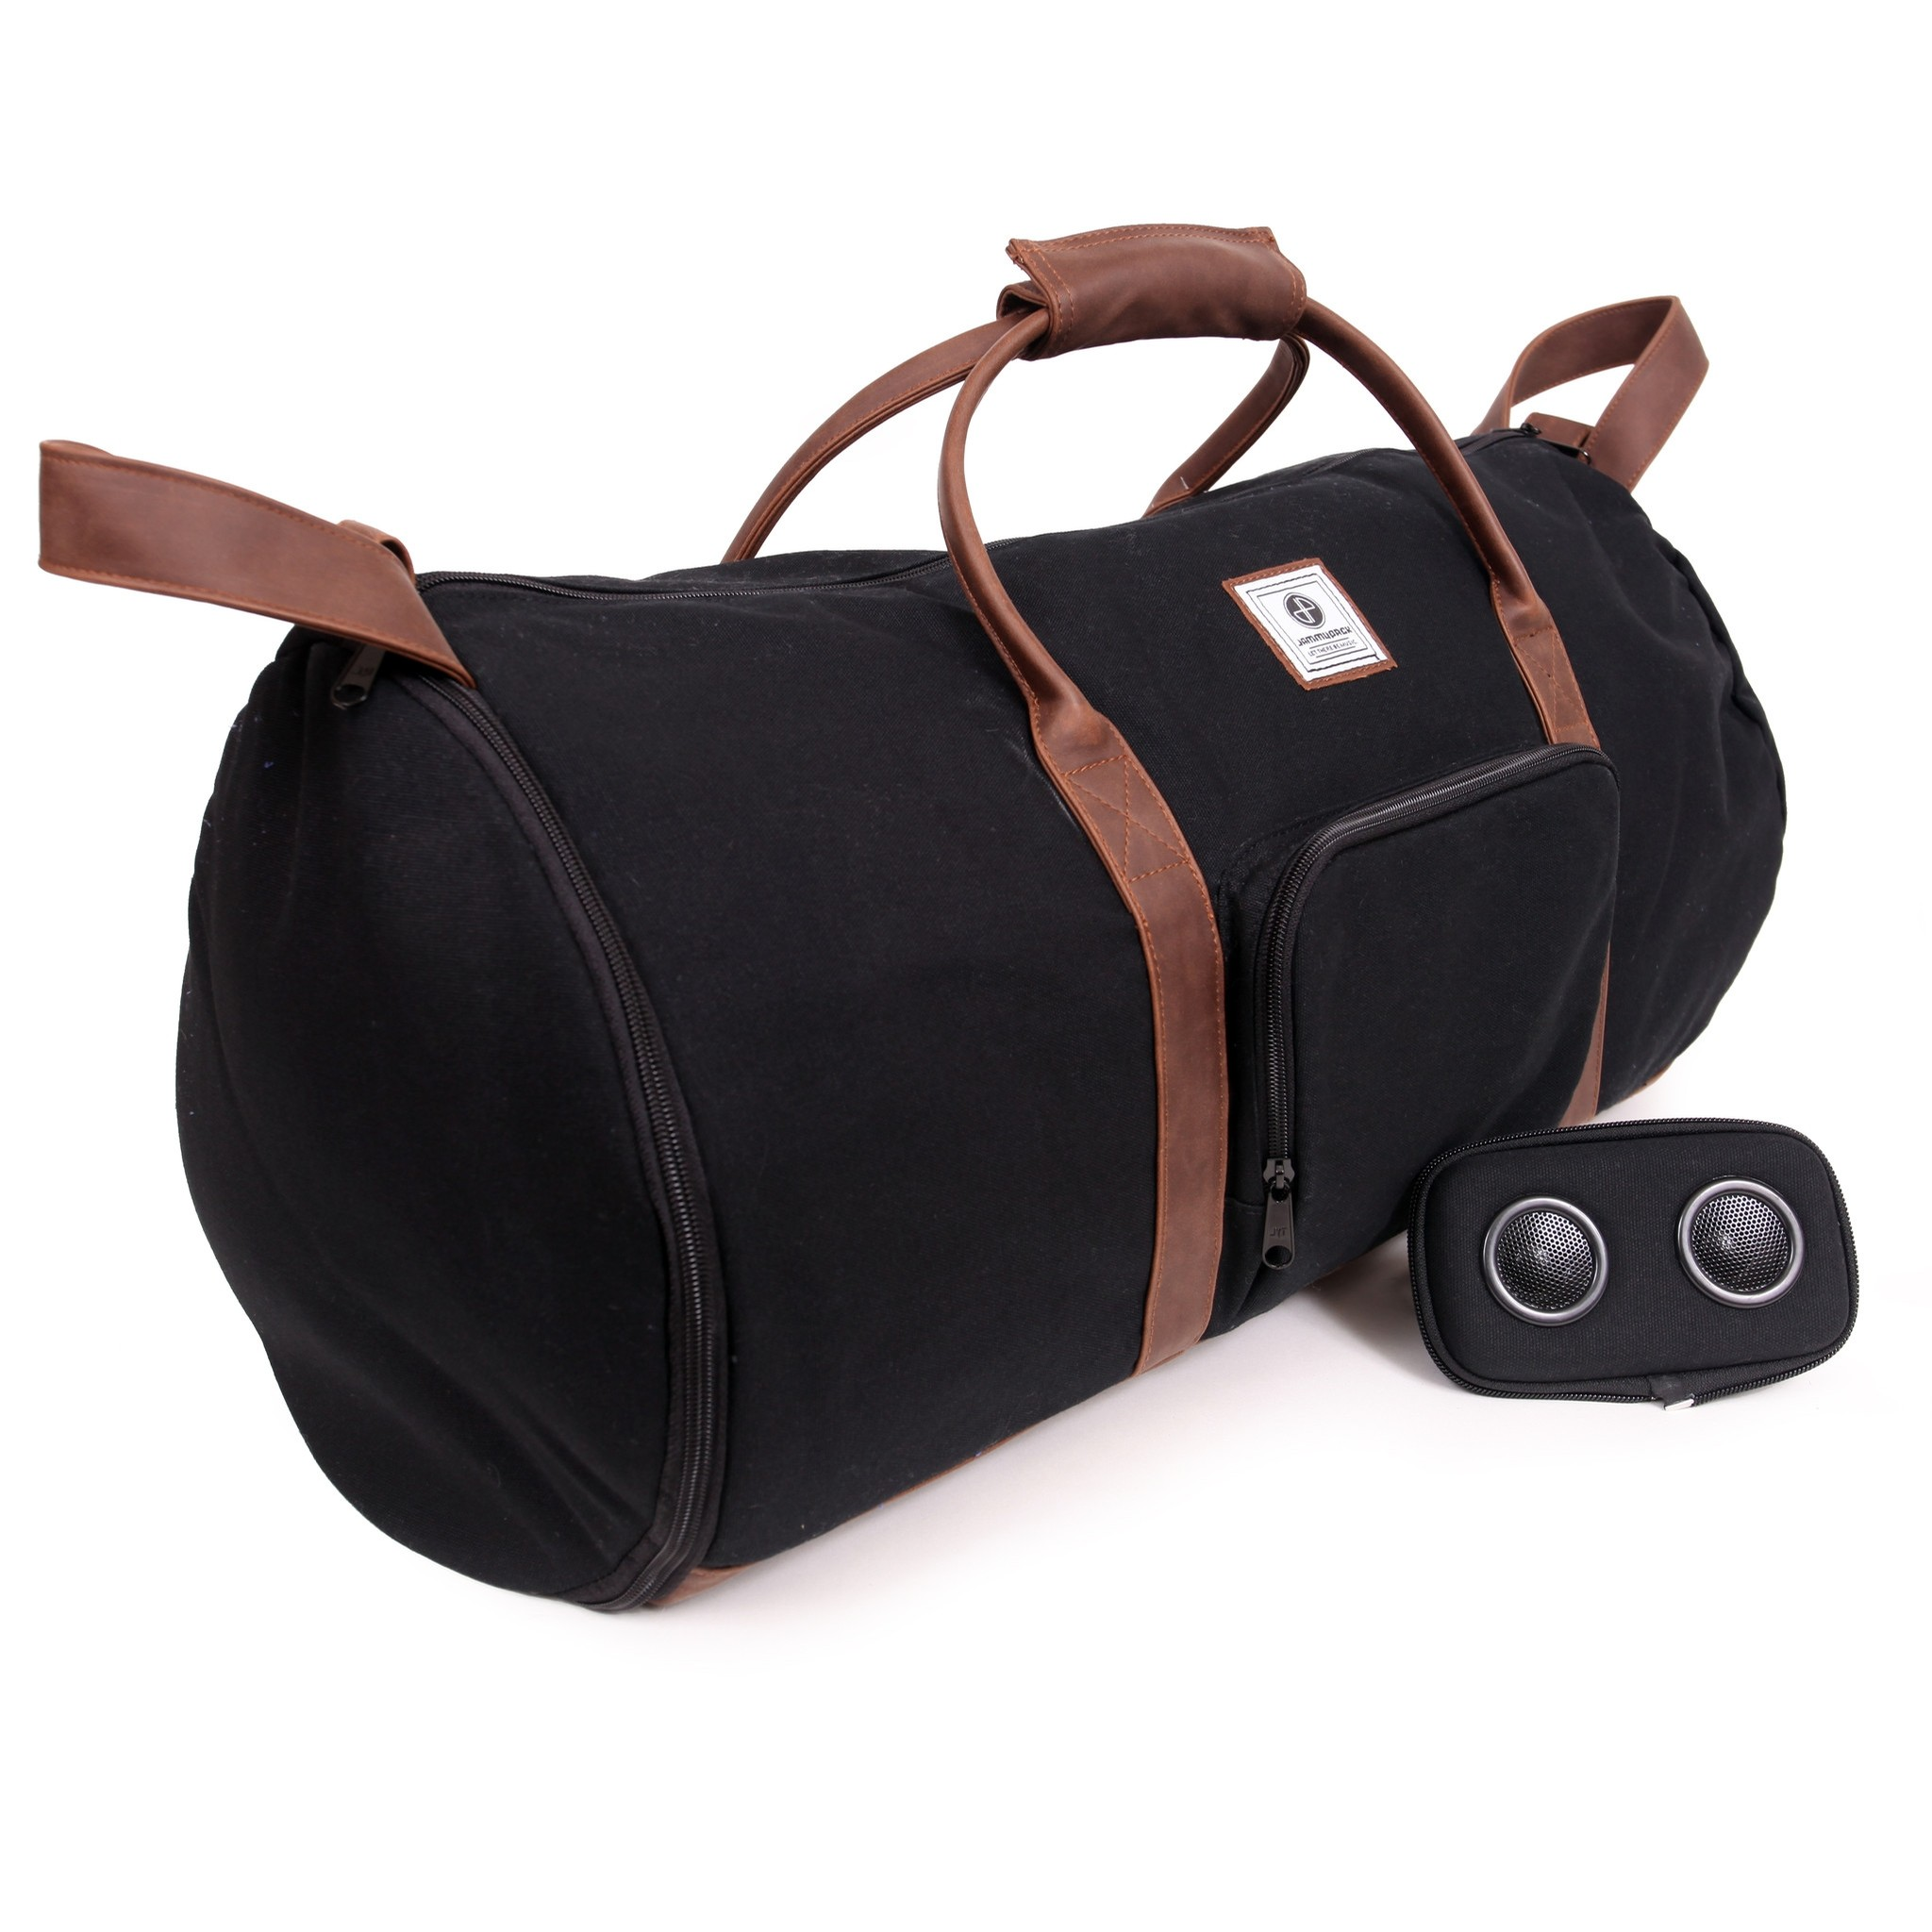 Black/Tan Duffle